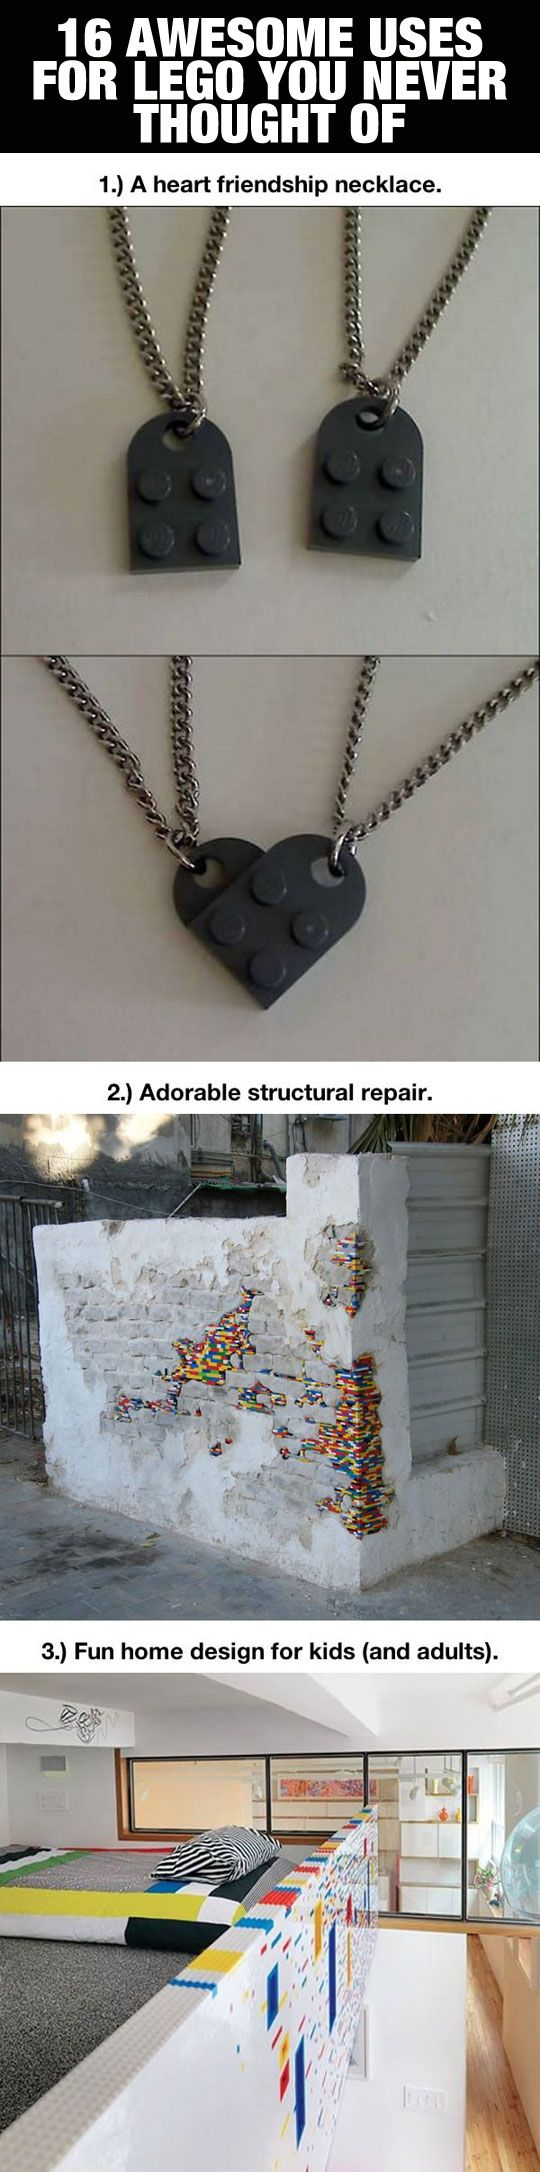 Awesome uses for LEGO you never thought of…Note the key ring/key holder idea